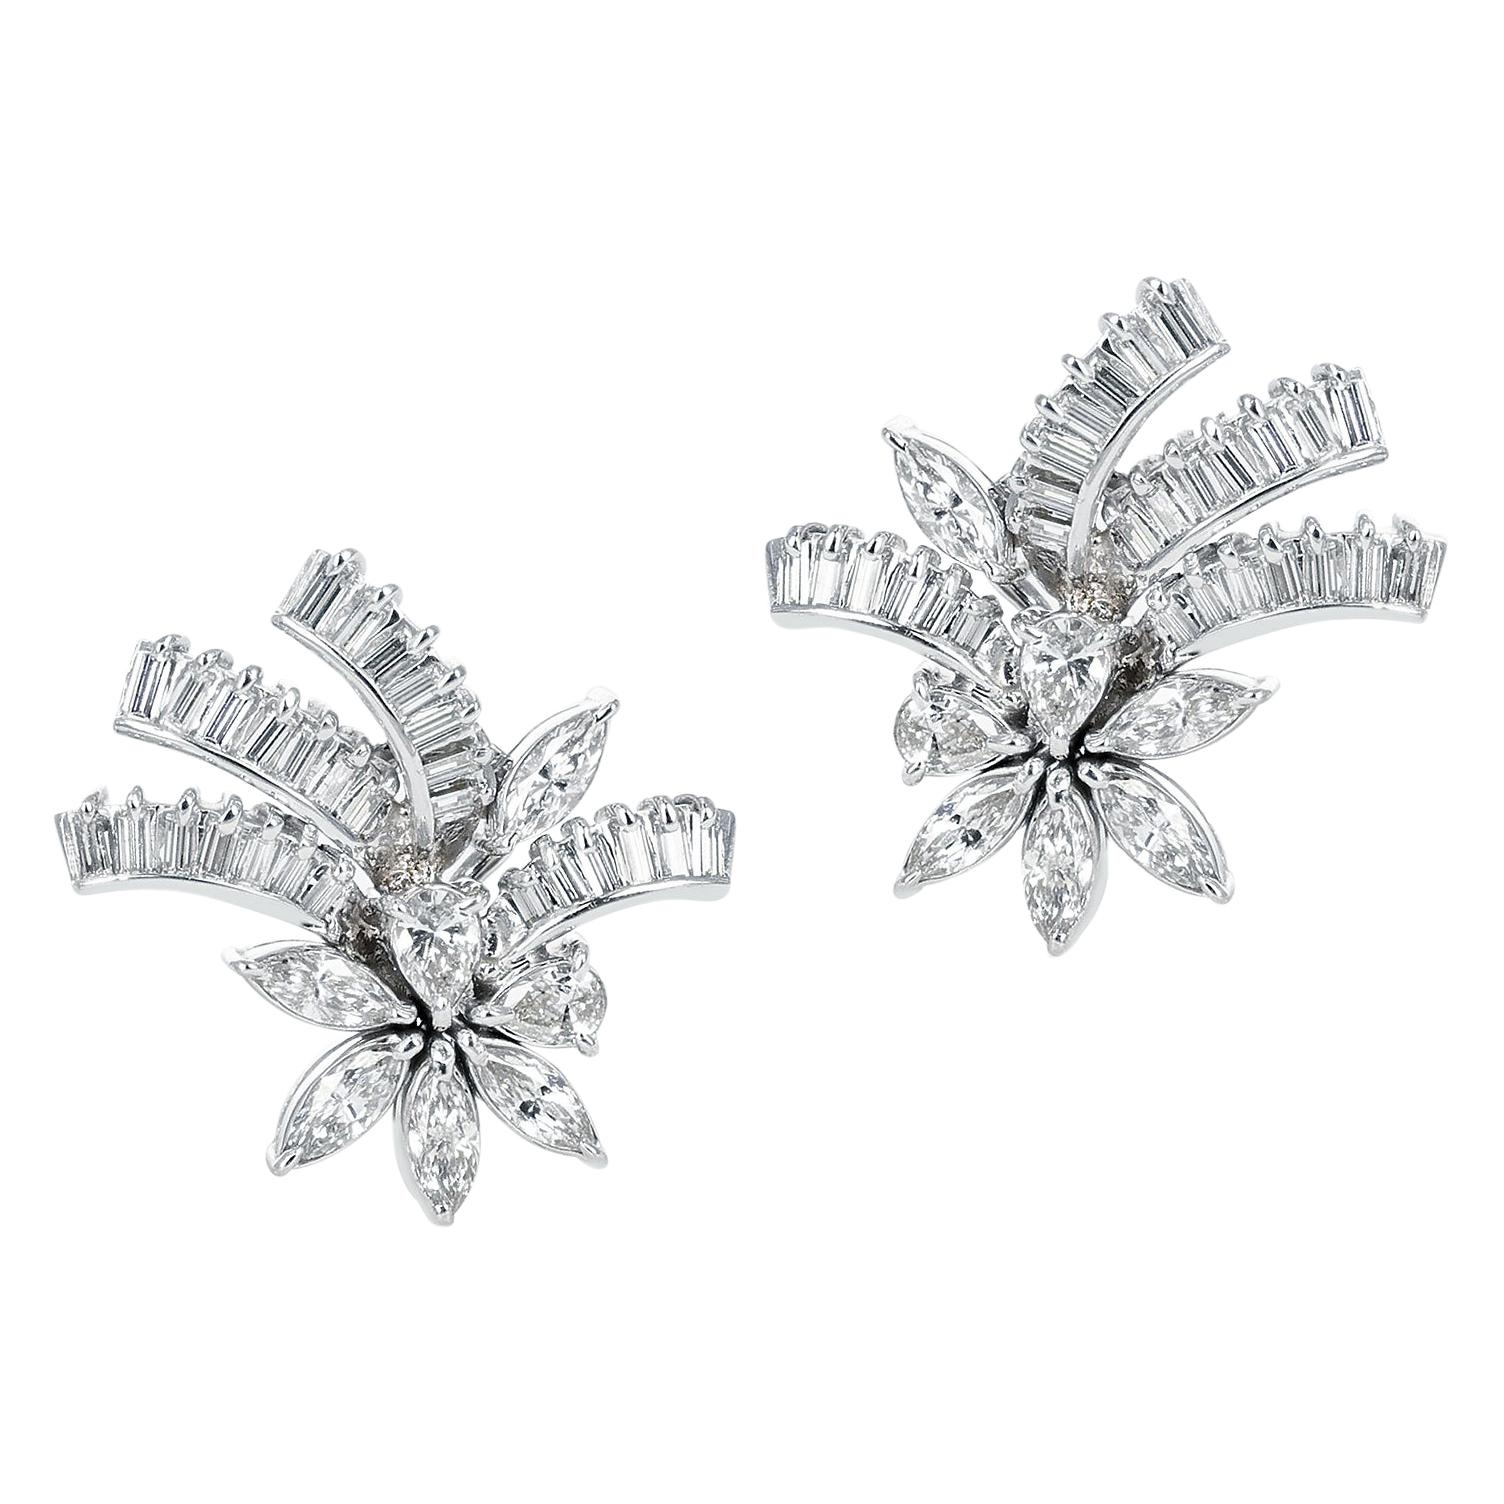 3 Carats Pear, Marquise, and Baguette Diamond Floral Cocktail Earrings, Platinum